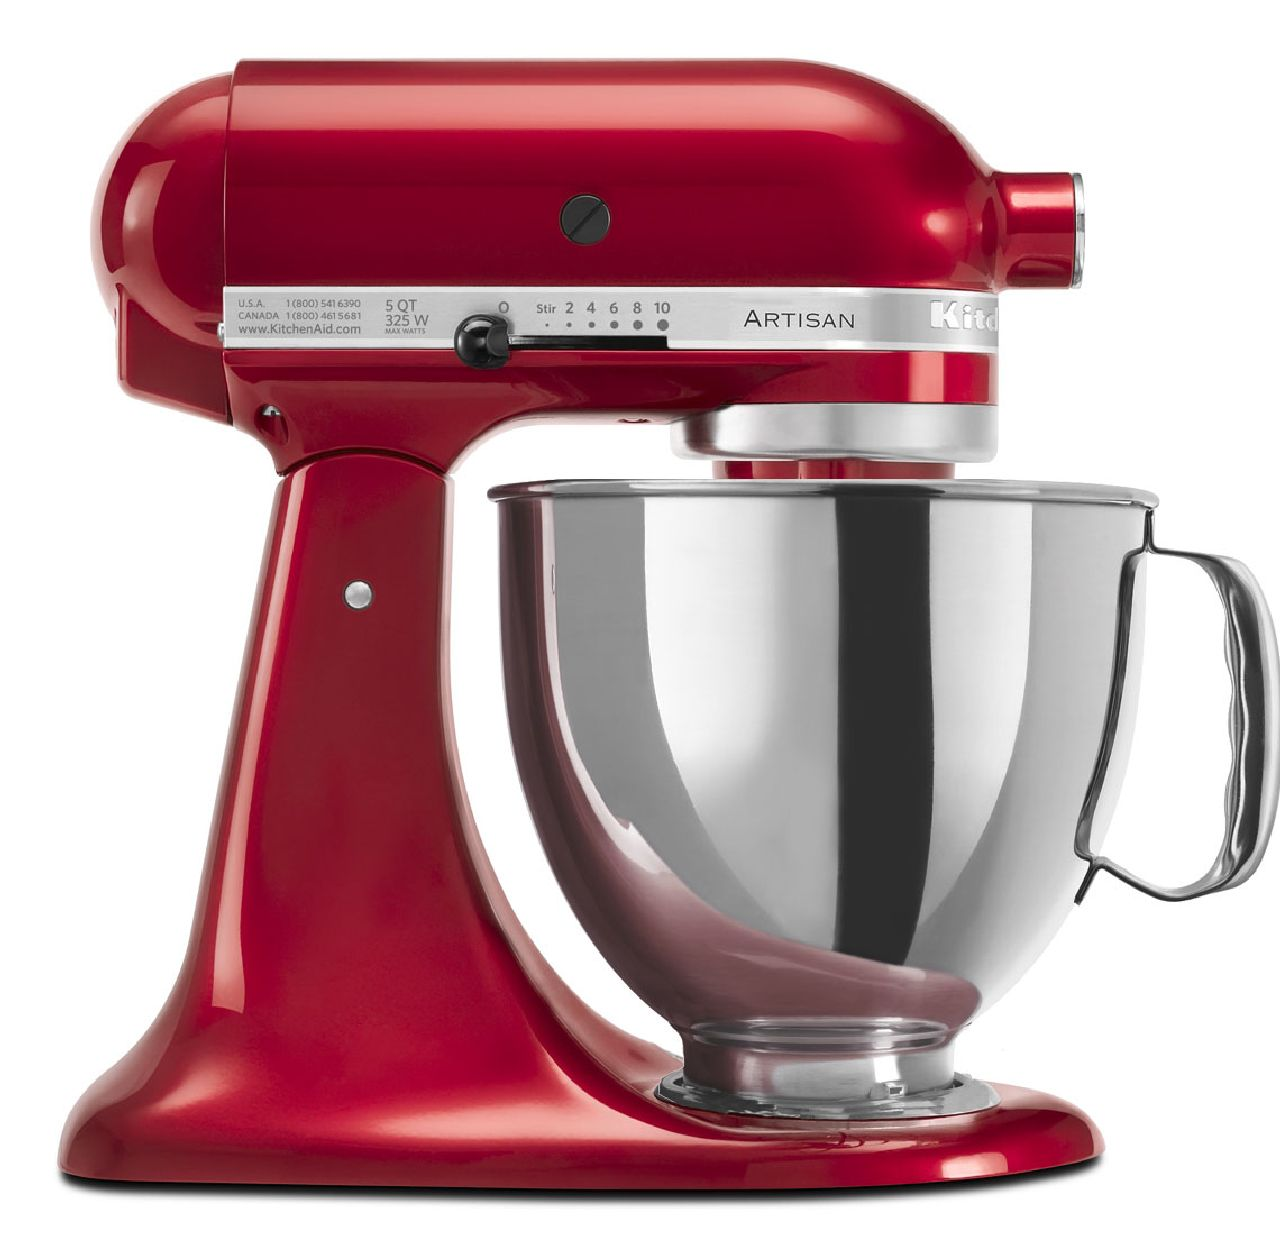 KitchenAid-Refurbished-Artisan-Series-5-Quart-Tilt-Head-Stand-Mixer-RRK150 thumbnail 22